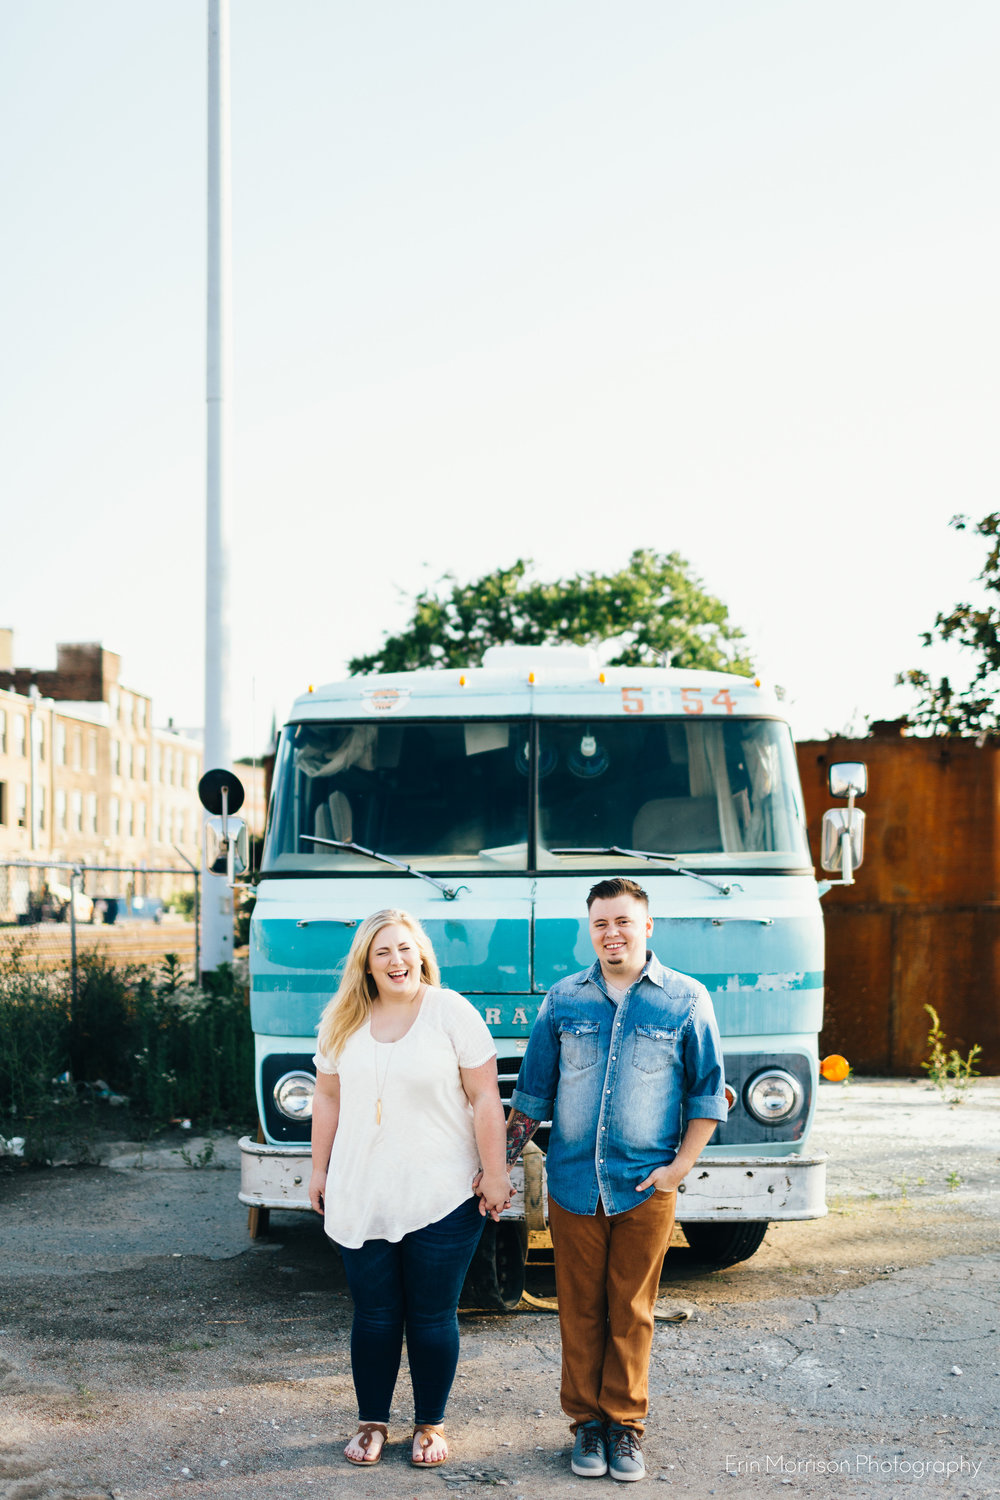 We're Jesse & Quinn - We're a husband and wife team out of Knoxville, TN. BUT we love to travelWe're big fans of joyWe love couples who love us backWe don't do fake super posey stuffWe do do genuine happy stuffWe're believe coffee can fix most thingsFlowers can fix the restWe're excellent dress fluffers, champagne brings, snot rag holdersWe're big believers in meshing with our clientsWe like lounging on our couch with our pups, binging The OfficeWe have Christmas candles burning year roundOur house is full of happy bright stuff because we're happy bright peopleWe want to be a part of your wedding day